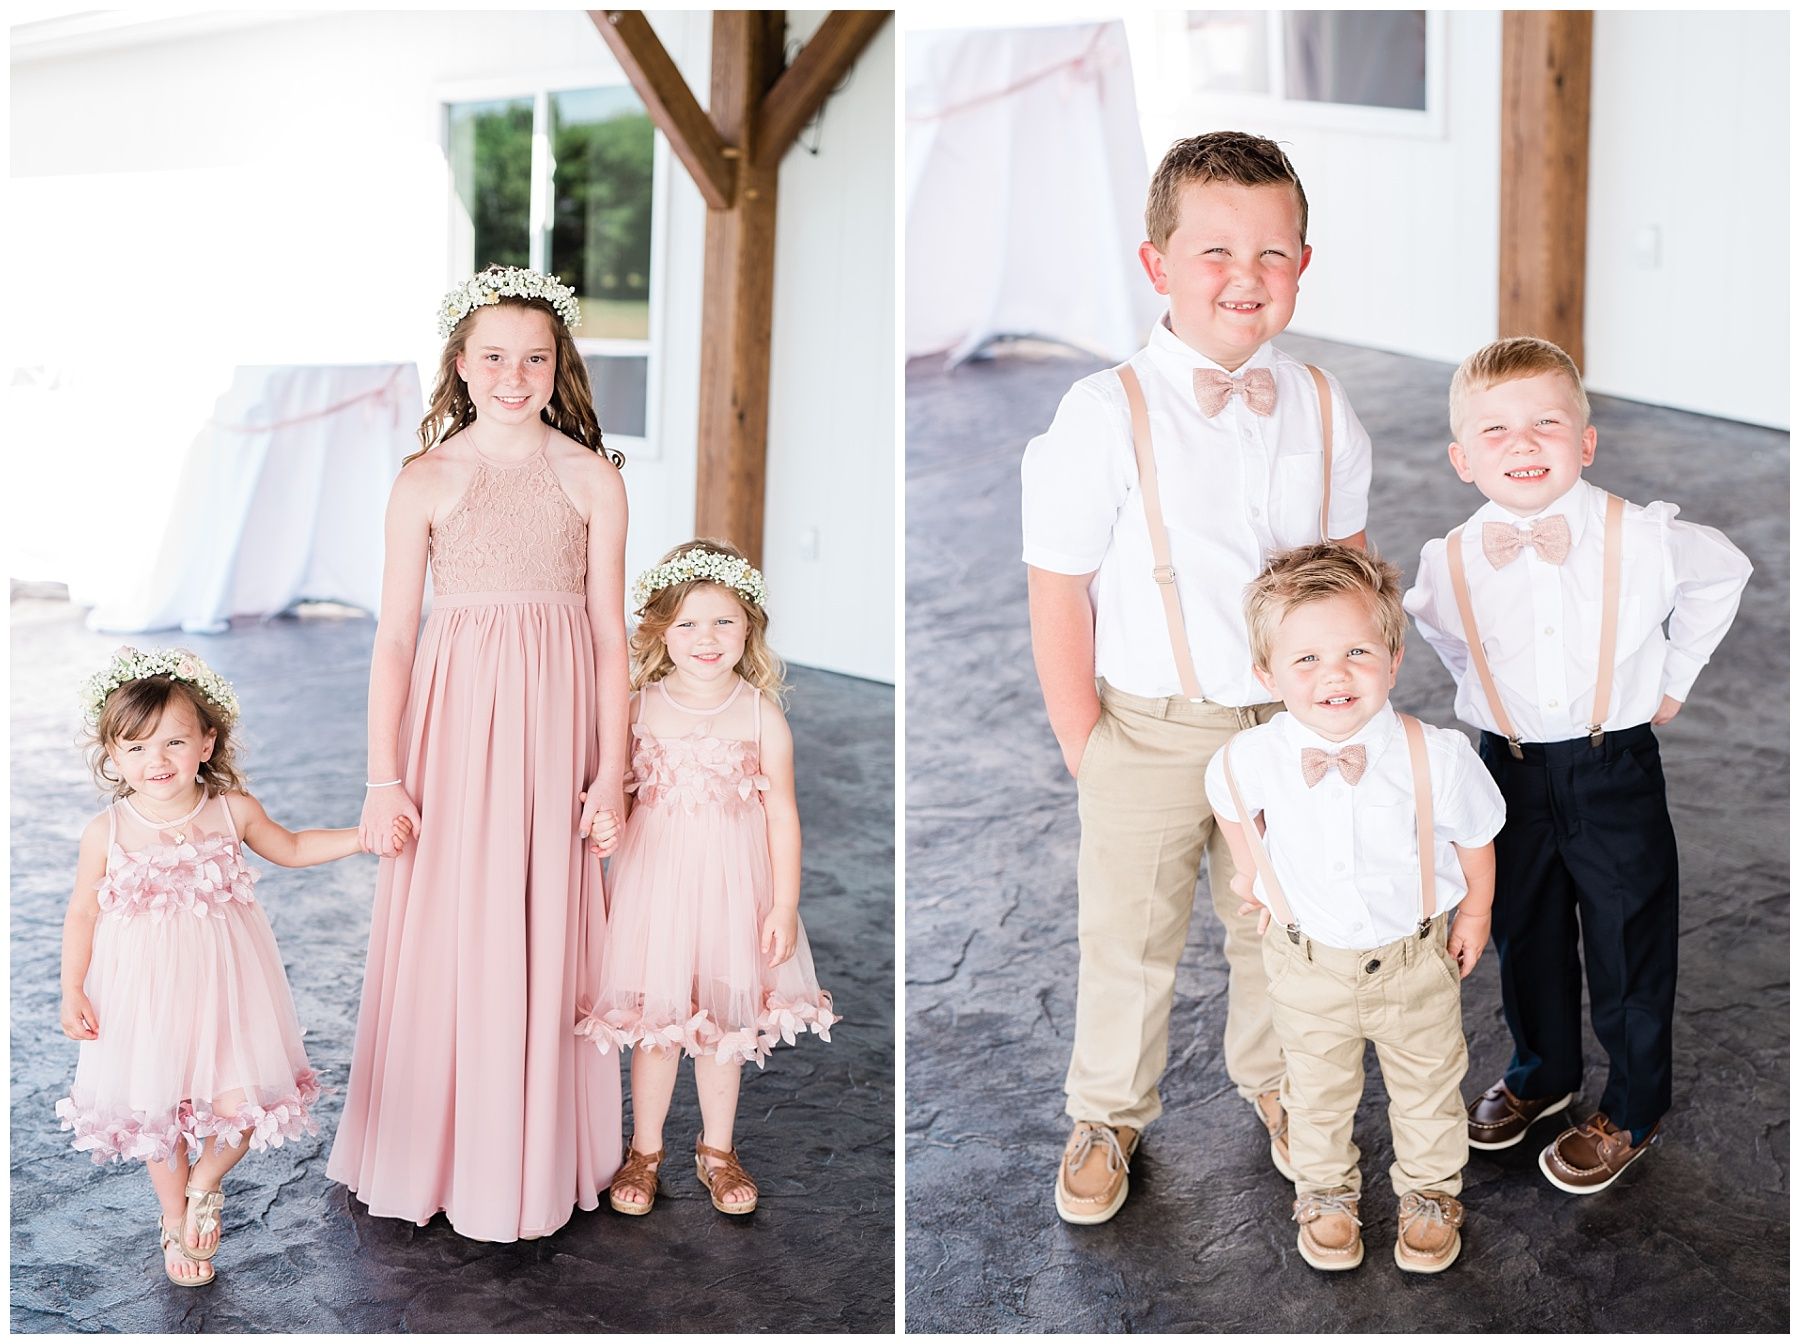 Stunning Heartfelt, Elegant, Fine Art, Chic, Outdoor Spring Wedding with Blush, Cream, Greenery, Rose Gold, and Sequins at Emerson Fields Venue by Kelsi Kliethermes Photography_0003.jpg